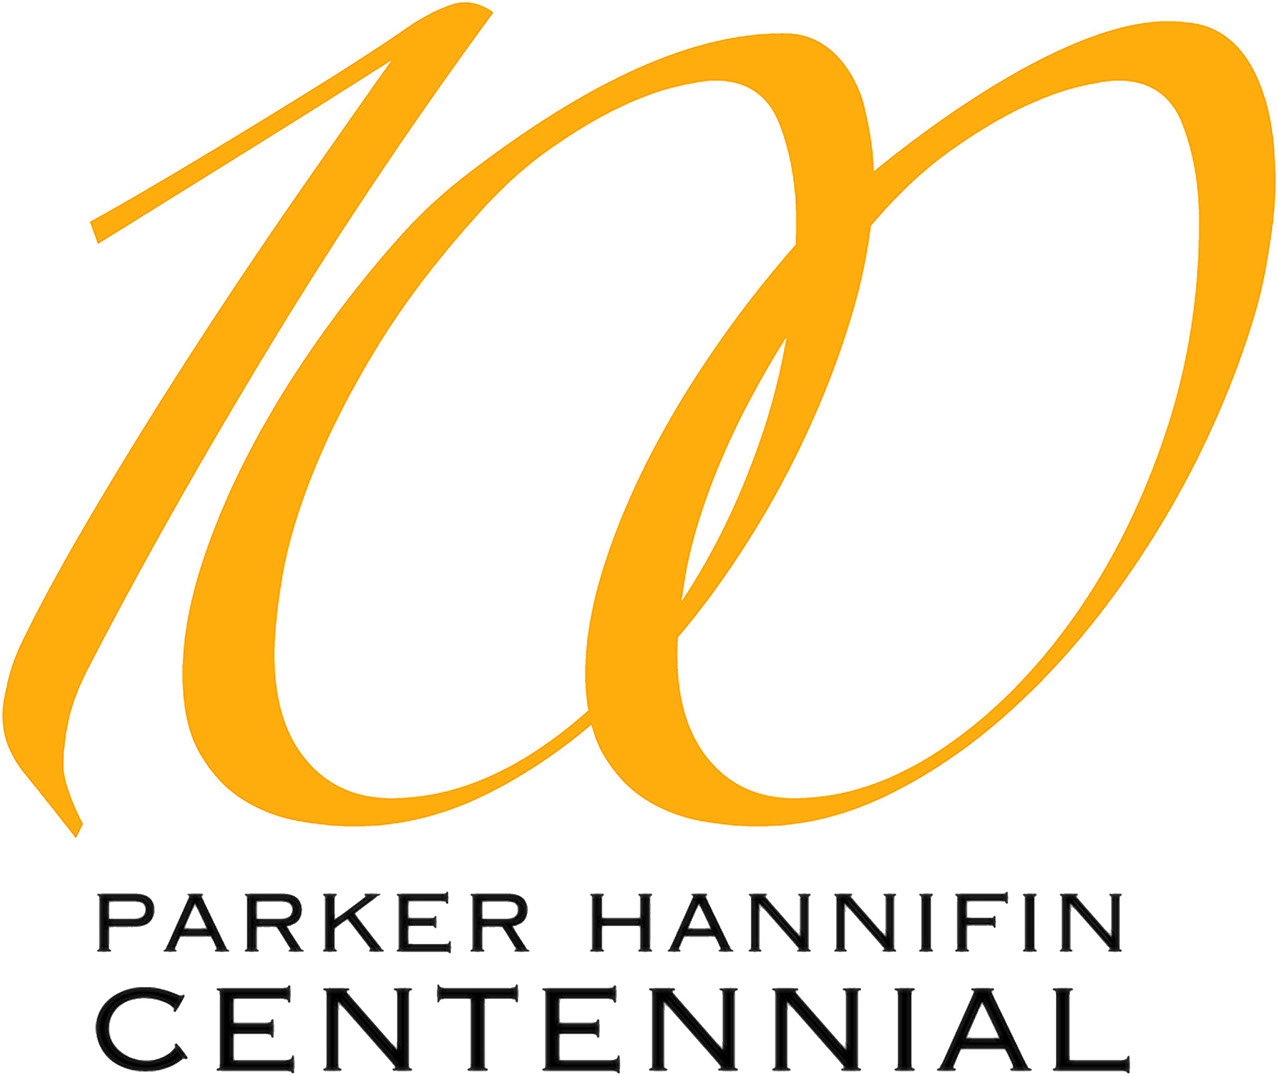 Parker 100 Years Hydraulic Pump Wiring Diagram Twenty Of Vsp Cooperation With The Partner Manufacturer Hannifin Is A Respectable Result Reliability And Efficiency Providing Foundation